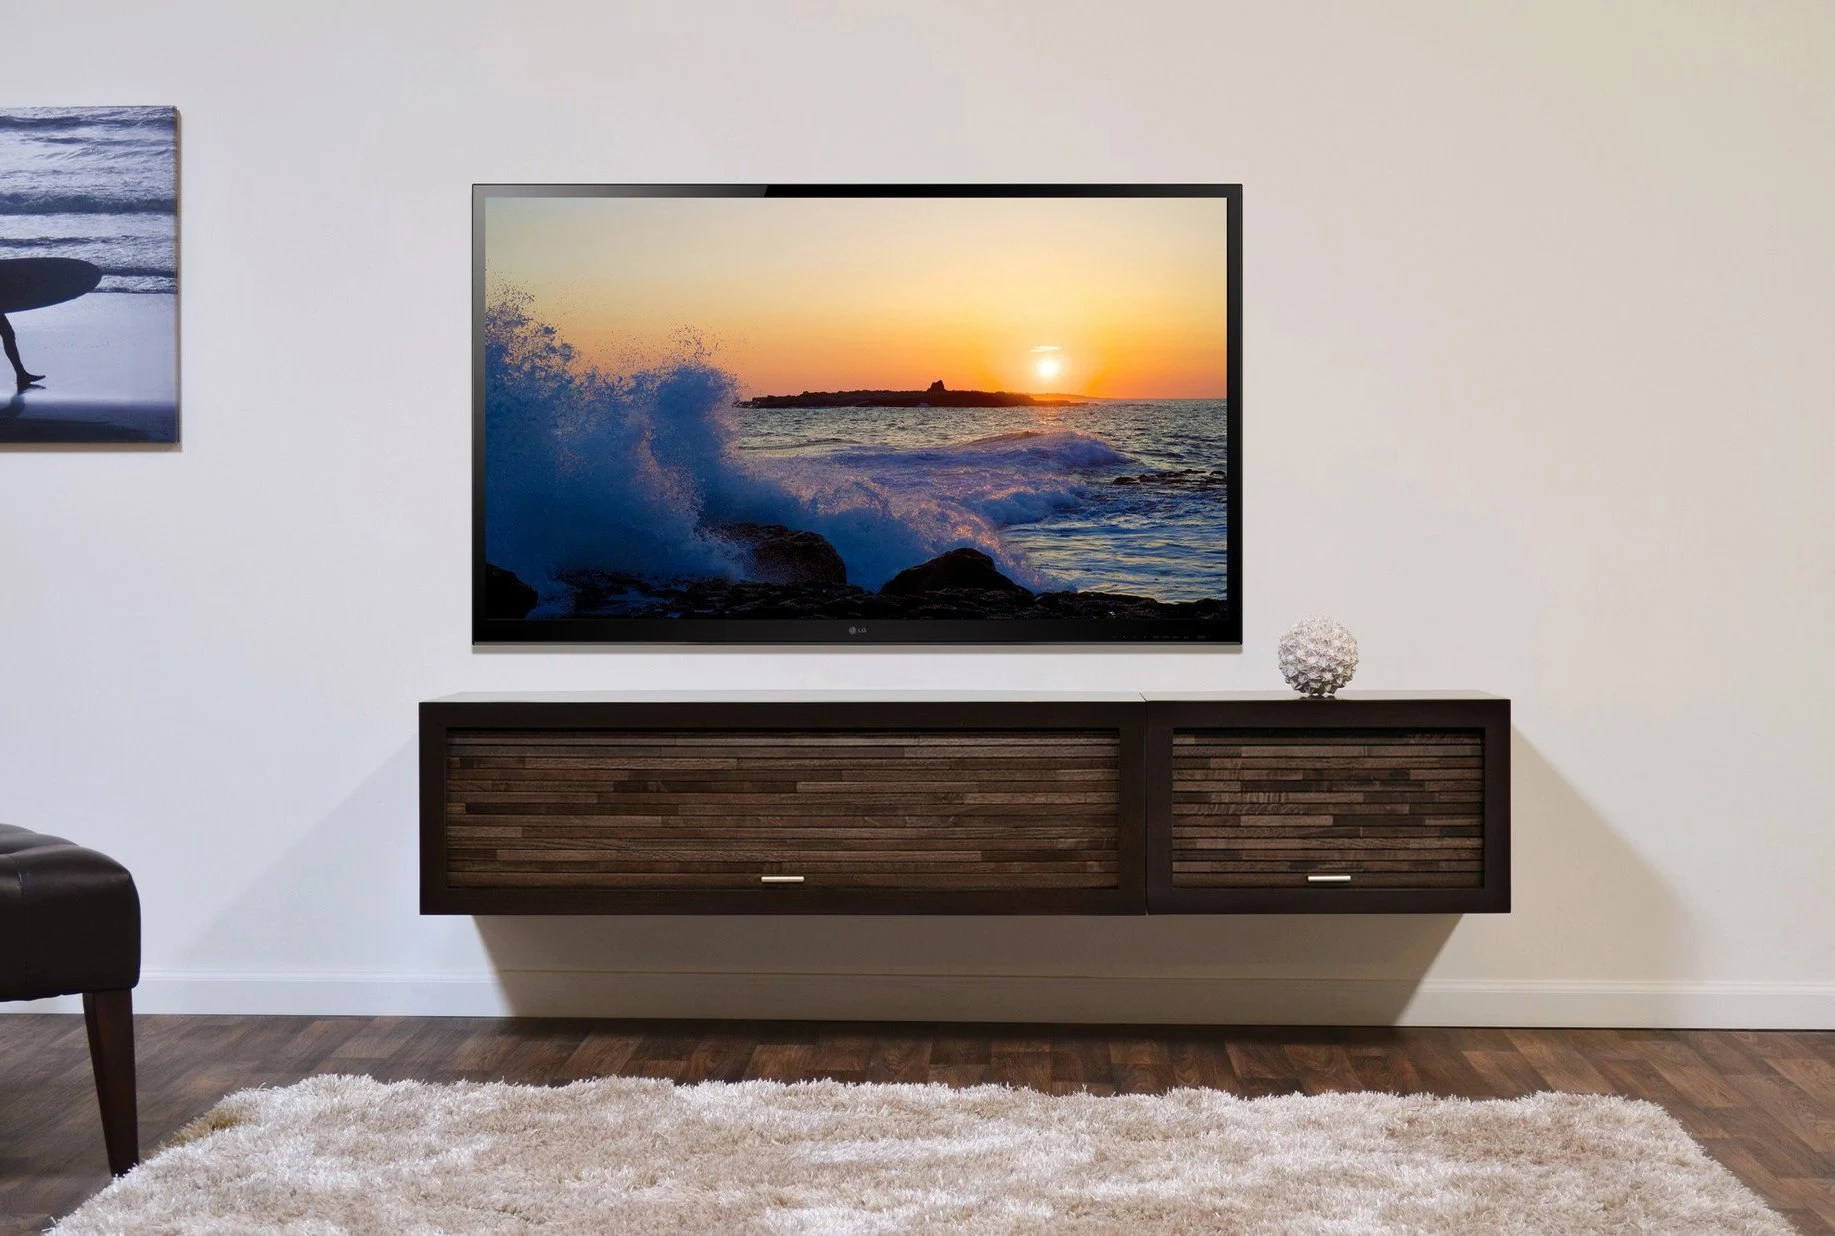 Modern Tv Modern Tv Stand Wall Mounted Floating Entertainment Center Console Eco Geo 2 Piece Espresso